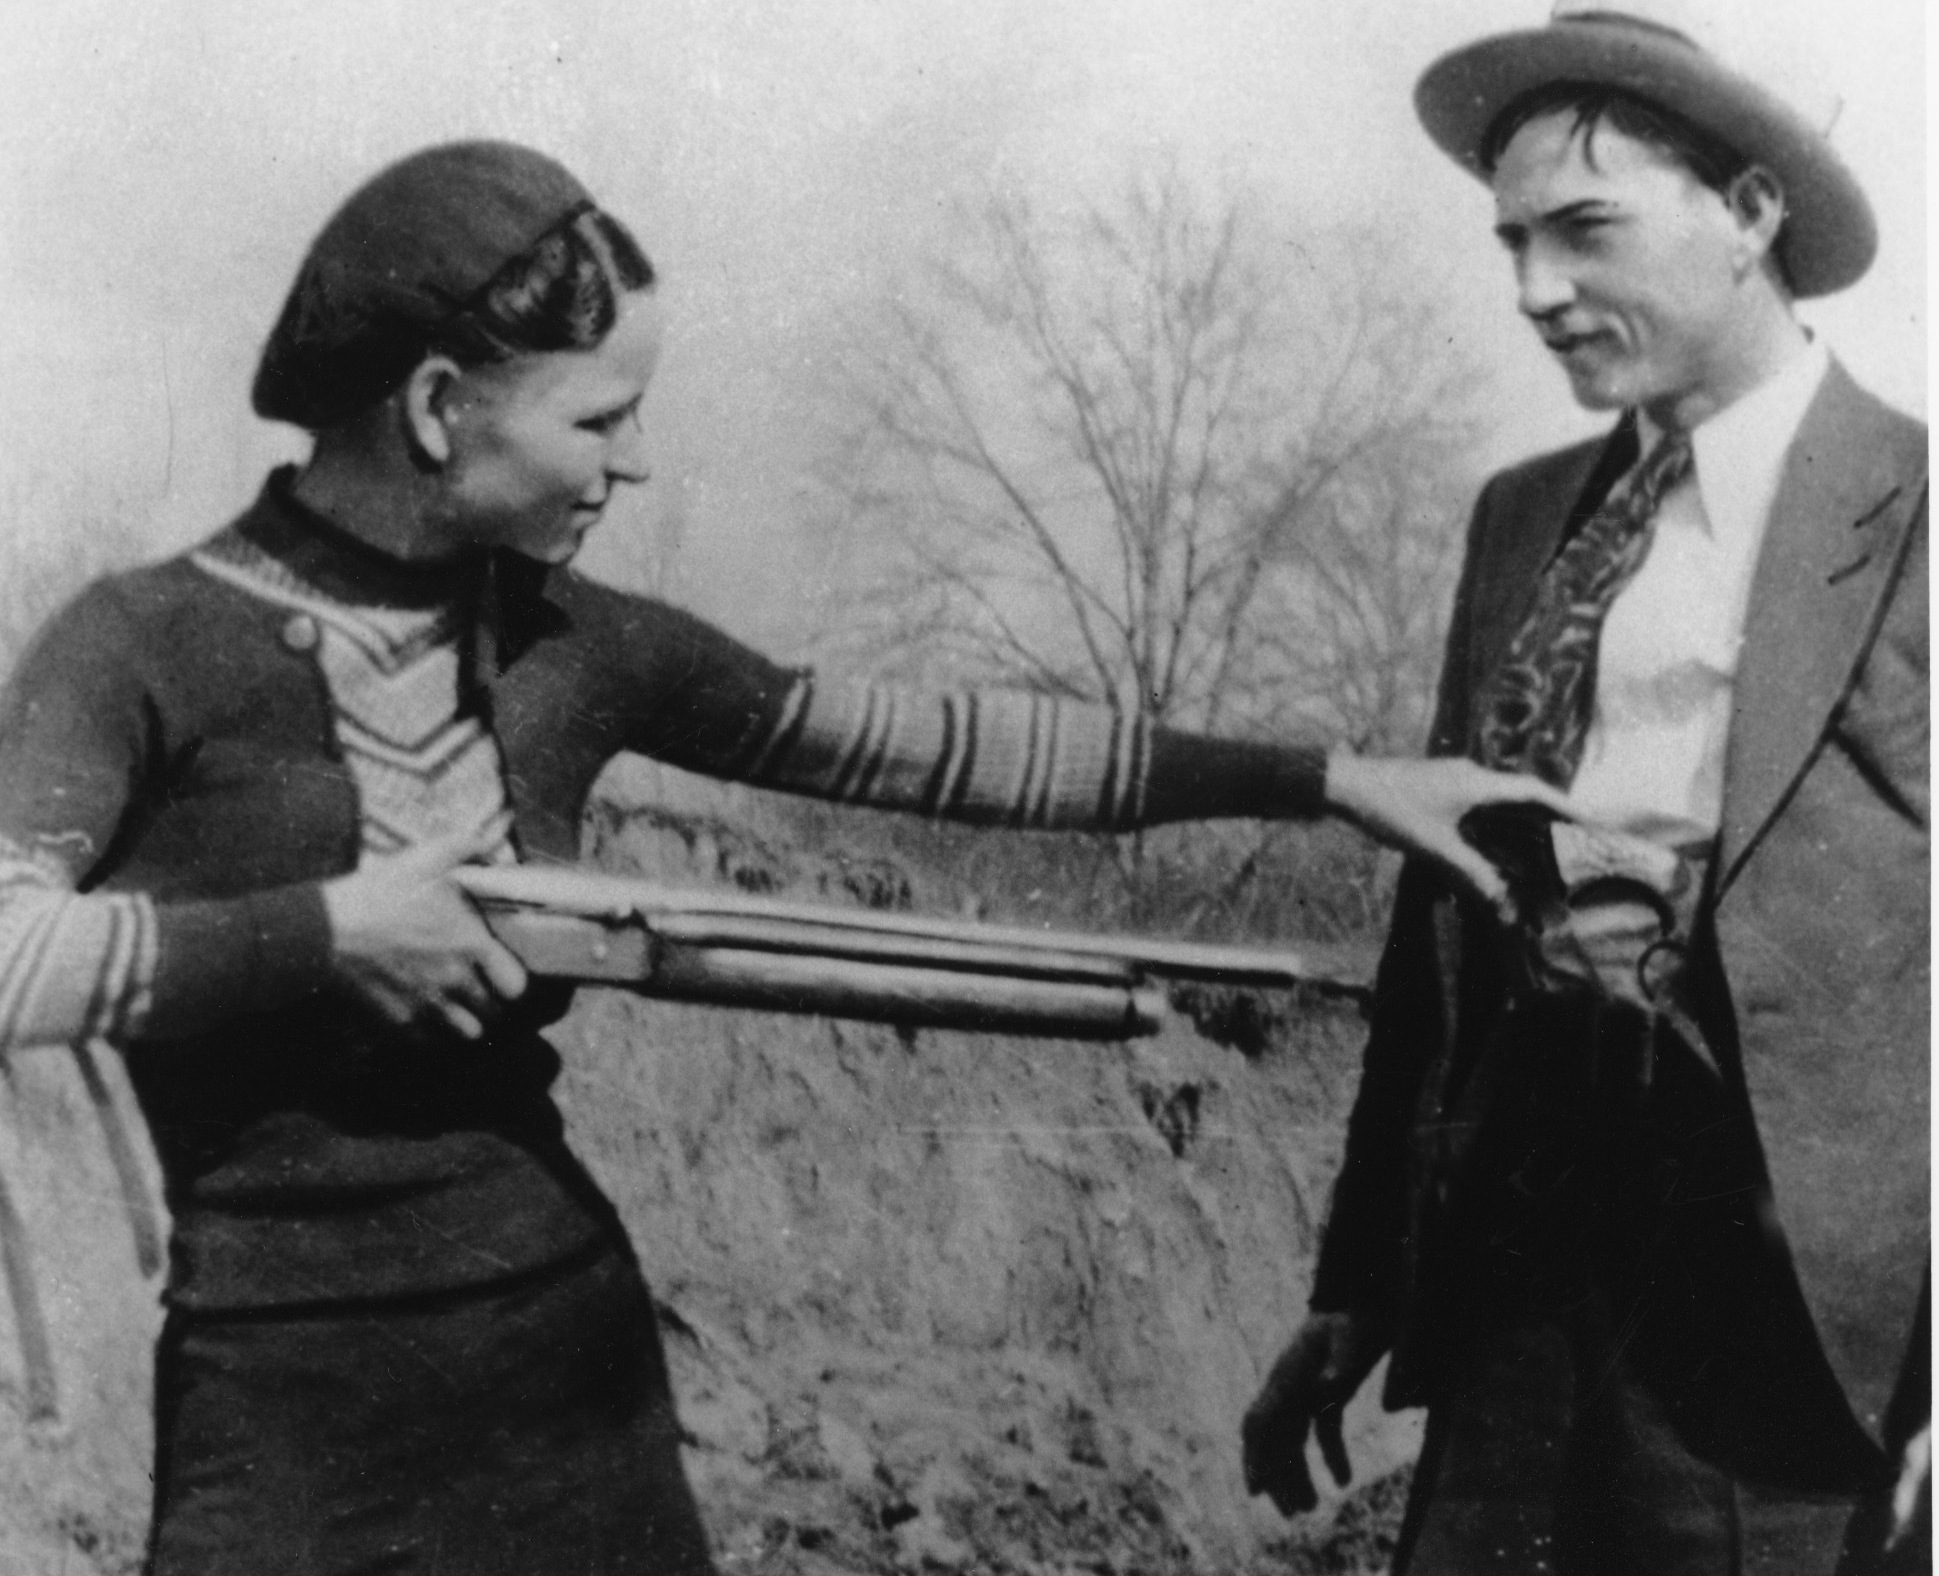 Bonnie And Clyde's Guns, Other Items Go On Auction | WLRN